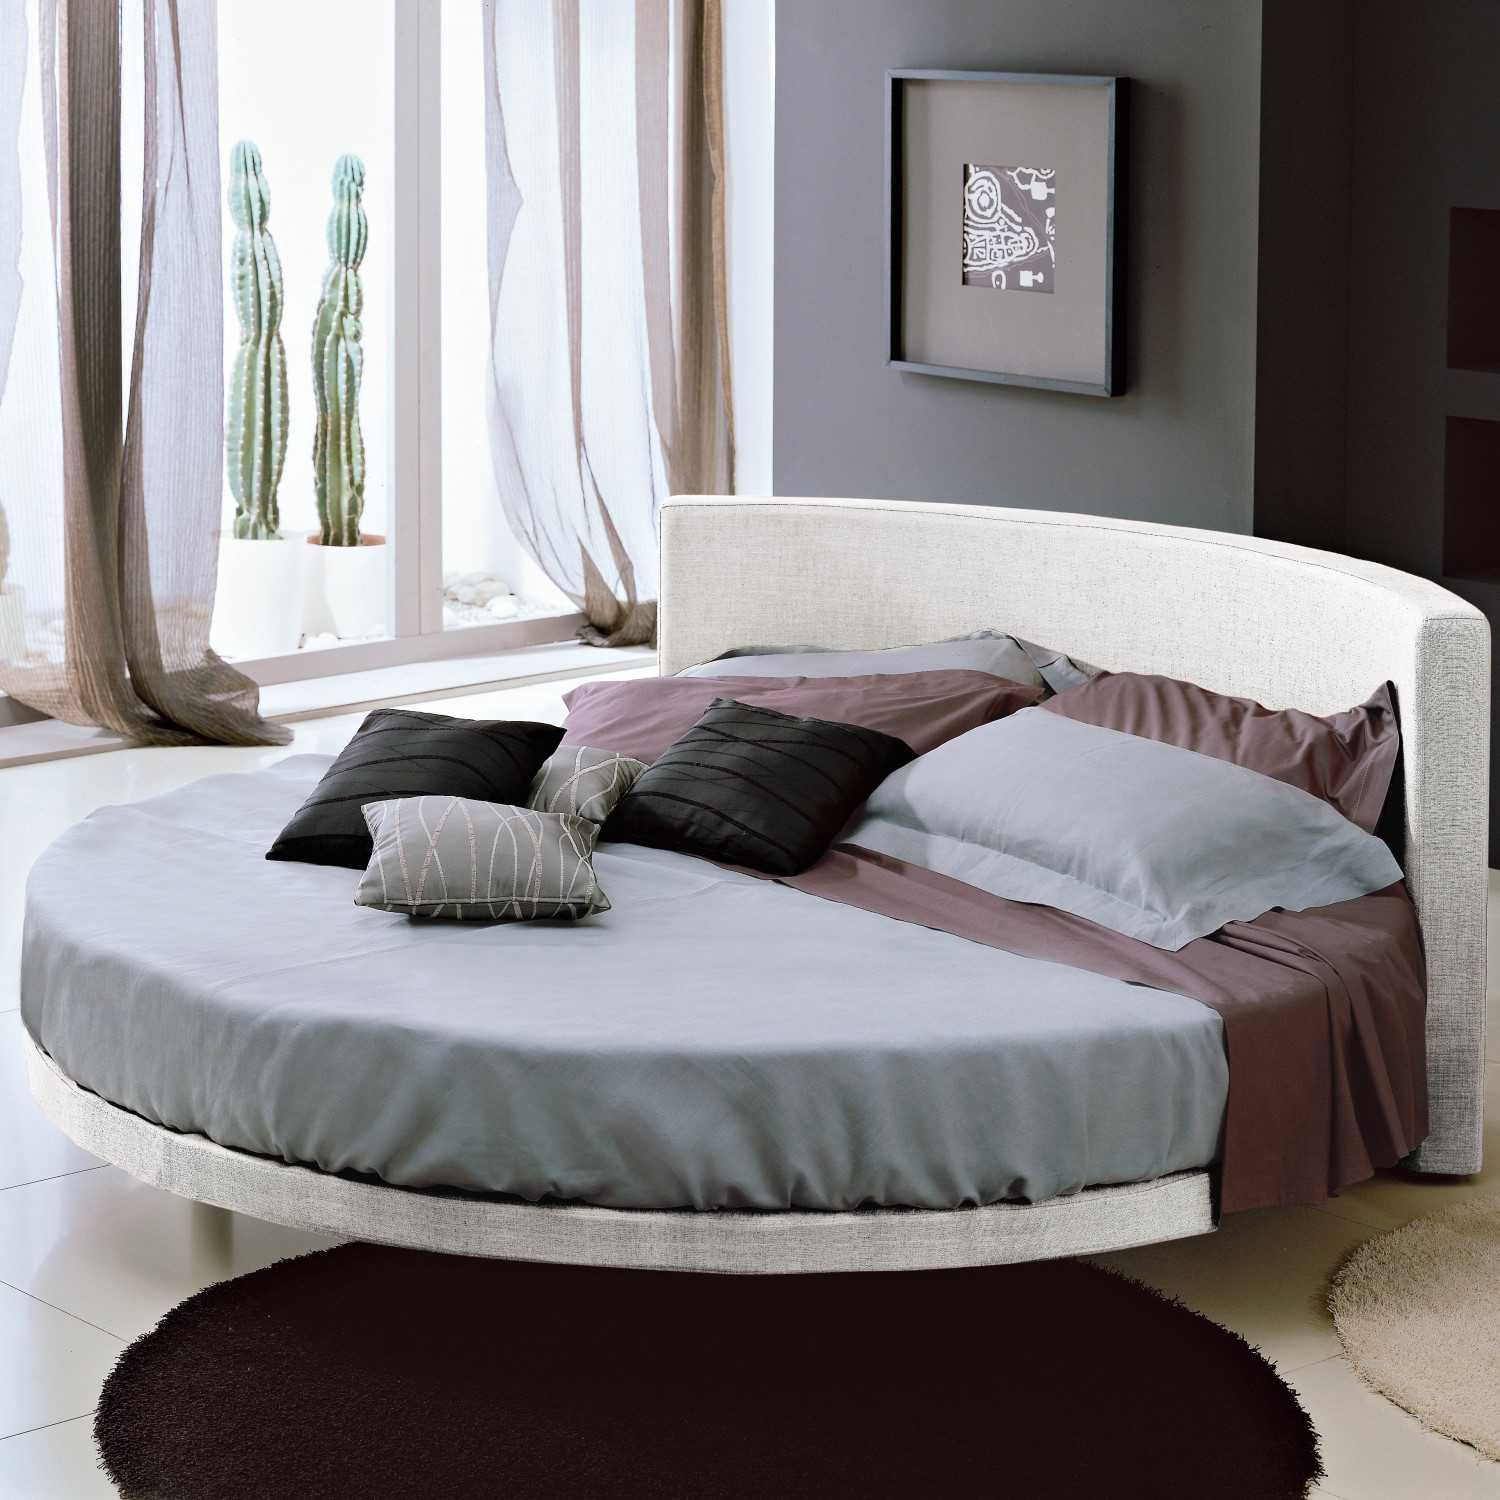 Round Bed Sheet Is To Decor Your Bedroom And They Give Some